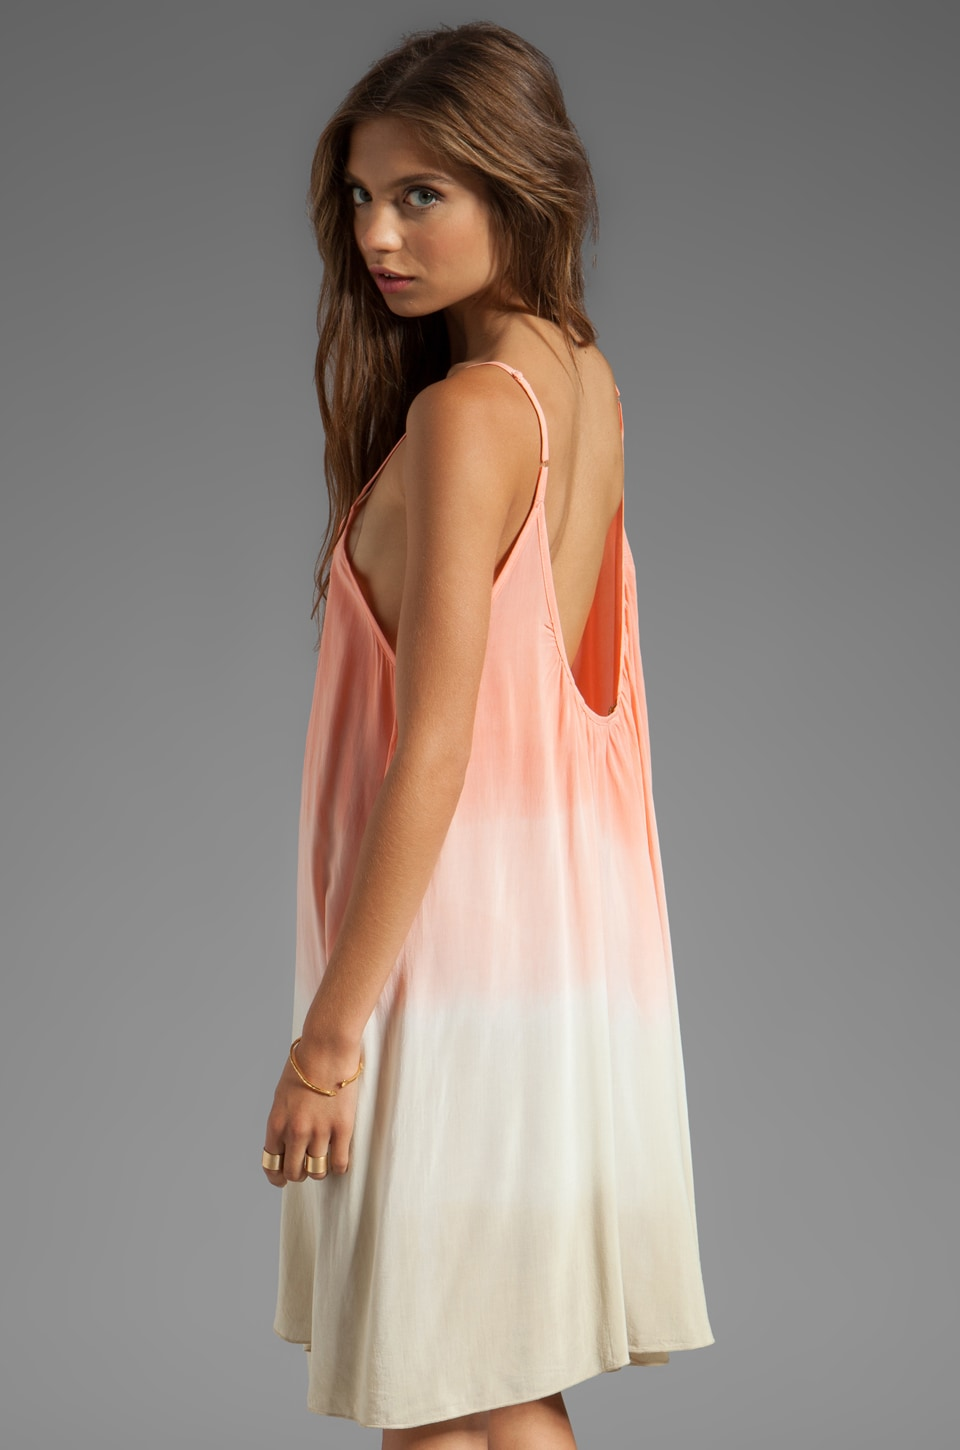 Blu Moon Baby Doll Tank Dress in Coral